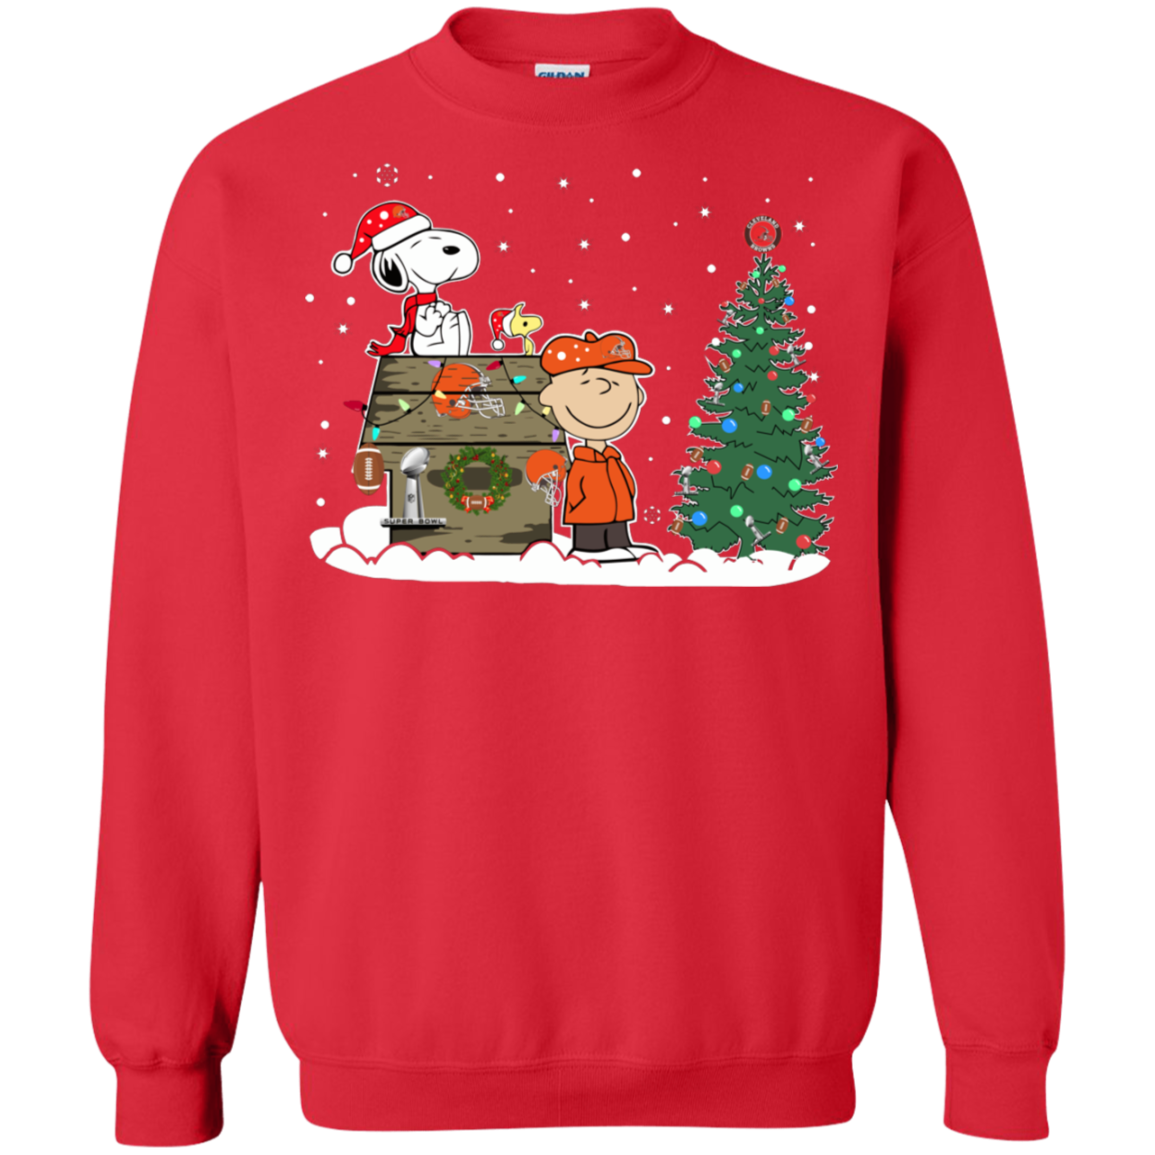 Cleveland Browns Christmas Sweater.Cover Your Body With Amazing Cleveland Browns Snoopy The